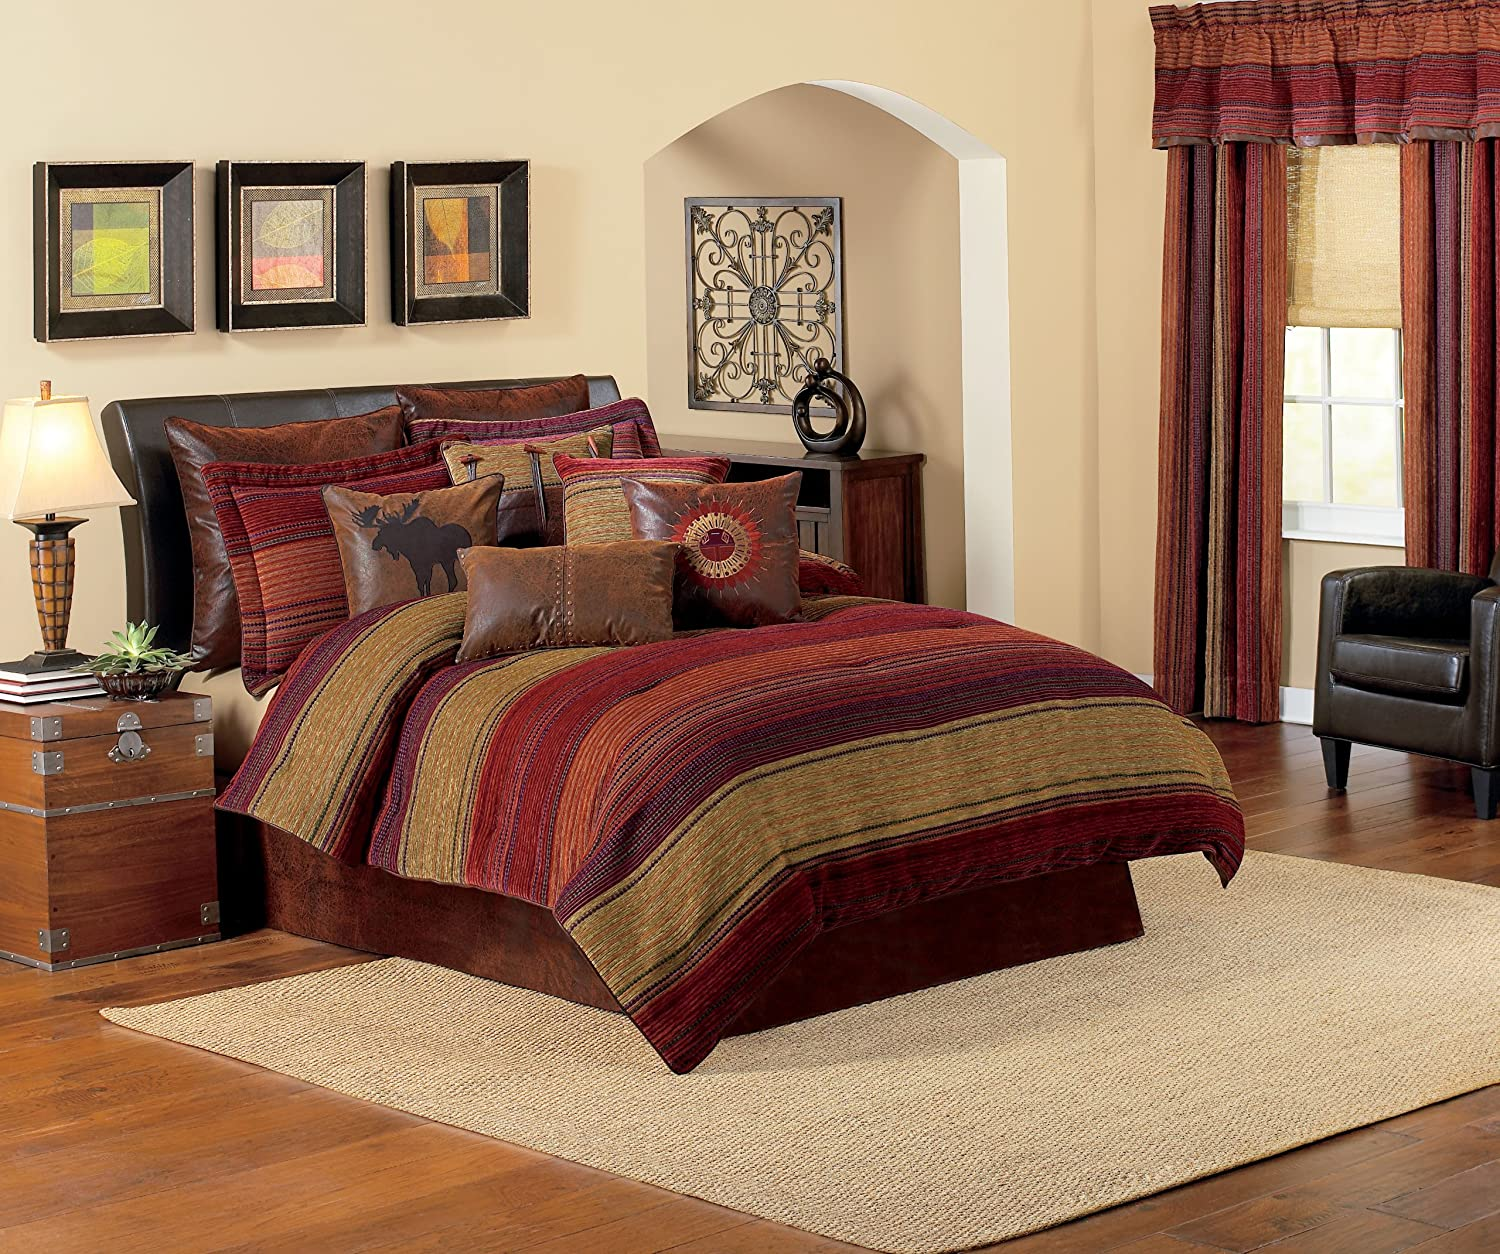 Croscill Plateau Comforter Set, Queen, Multi